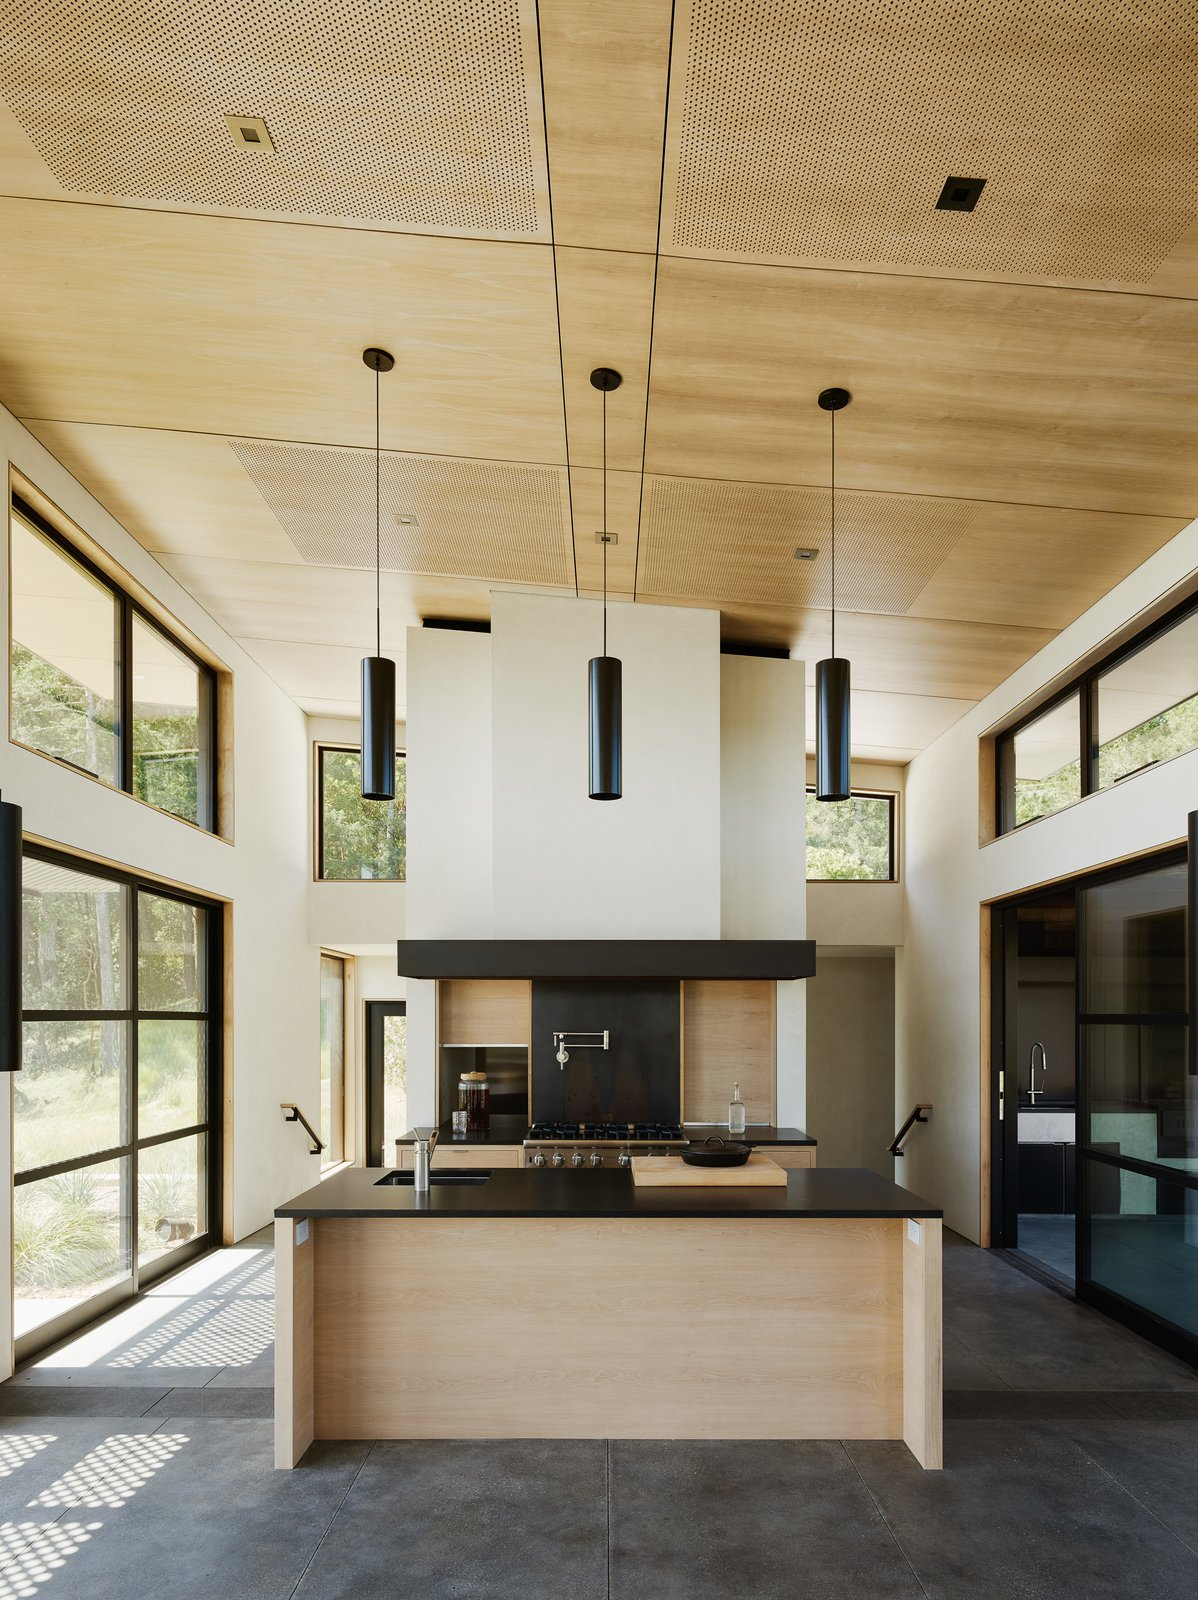 Kitchen, Pendant, Range, Wood, Wood, Concrete, and Undermount Warm wood and dark surfaces contrast with white walls.  Best Kitchen Wood Range Photos from Sonoma Wine Country I